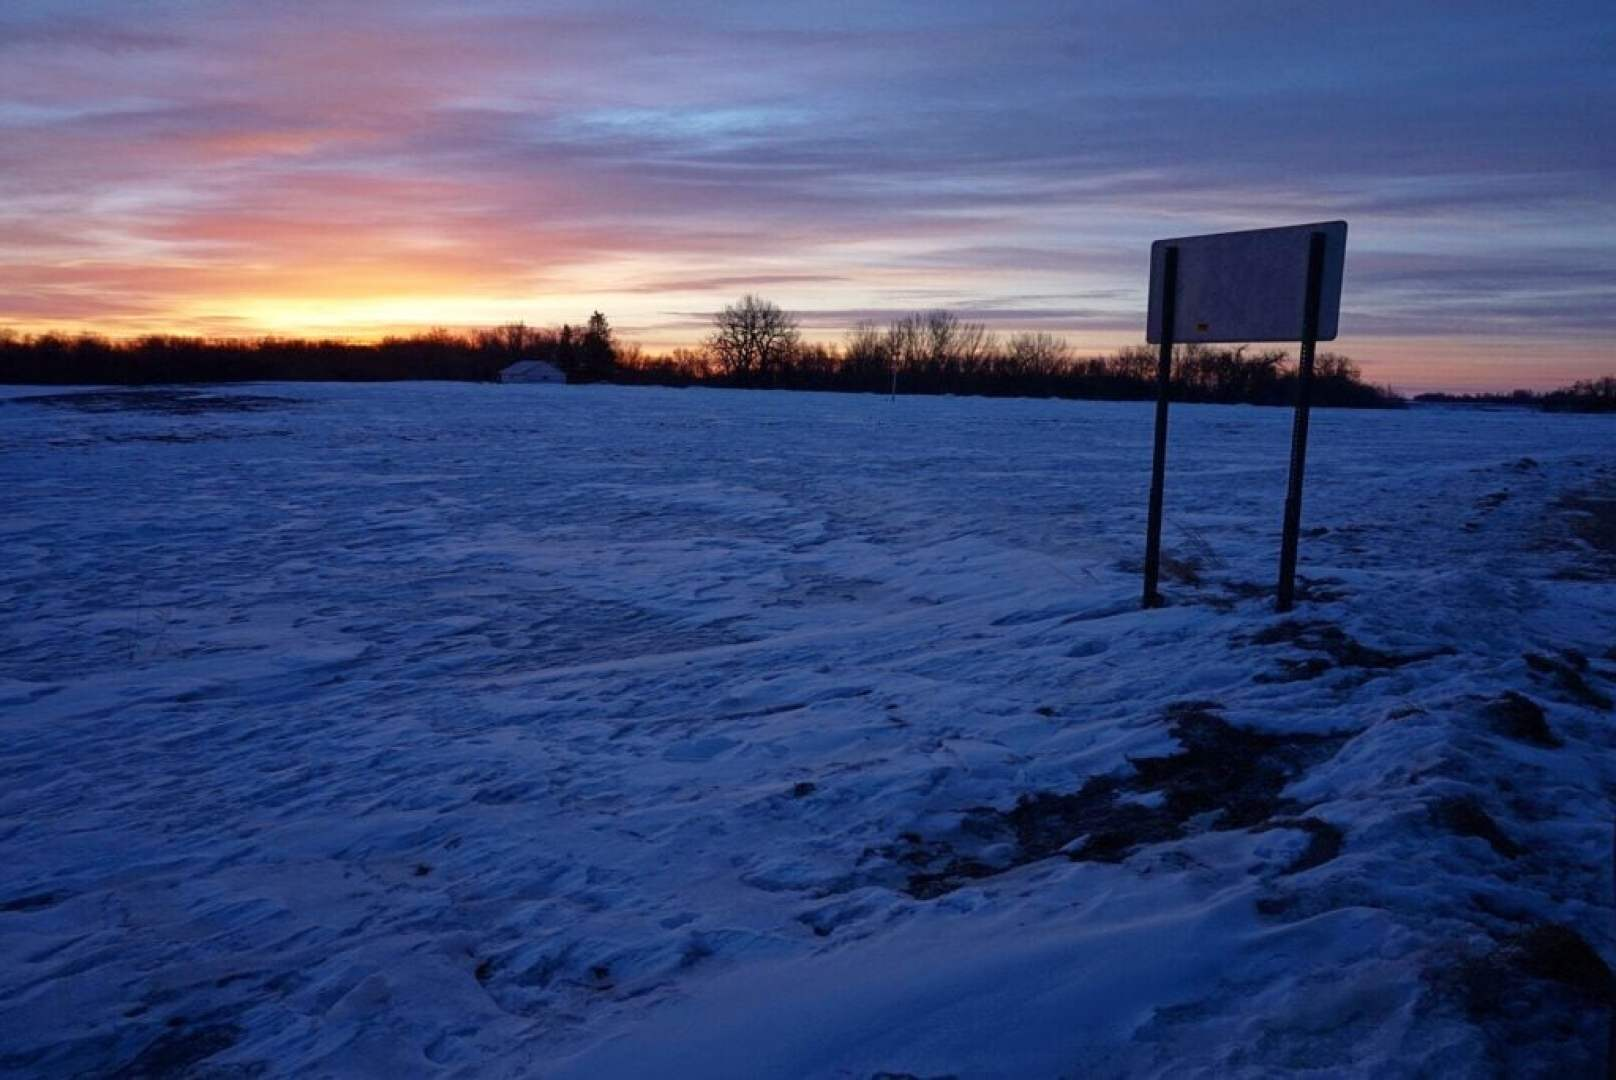 Minnesota Sunrise • What's it Really Like Living in the Coldest City in the Continental U.S.? | The Wanderful Me